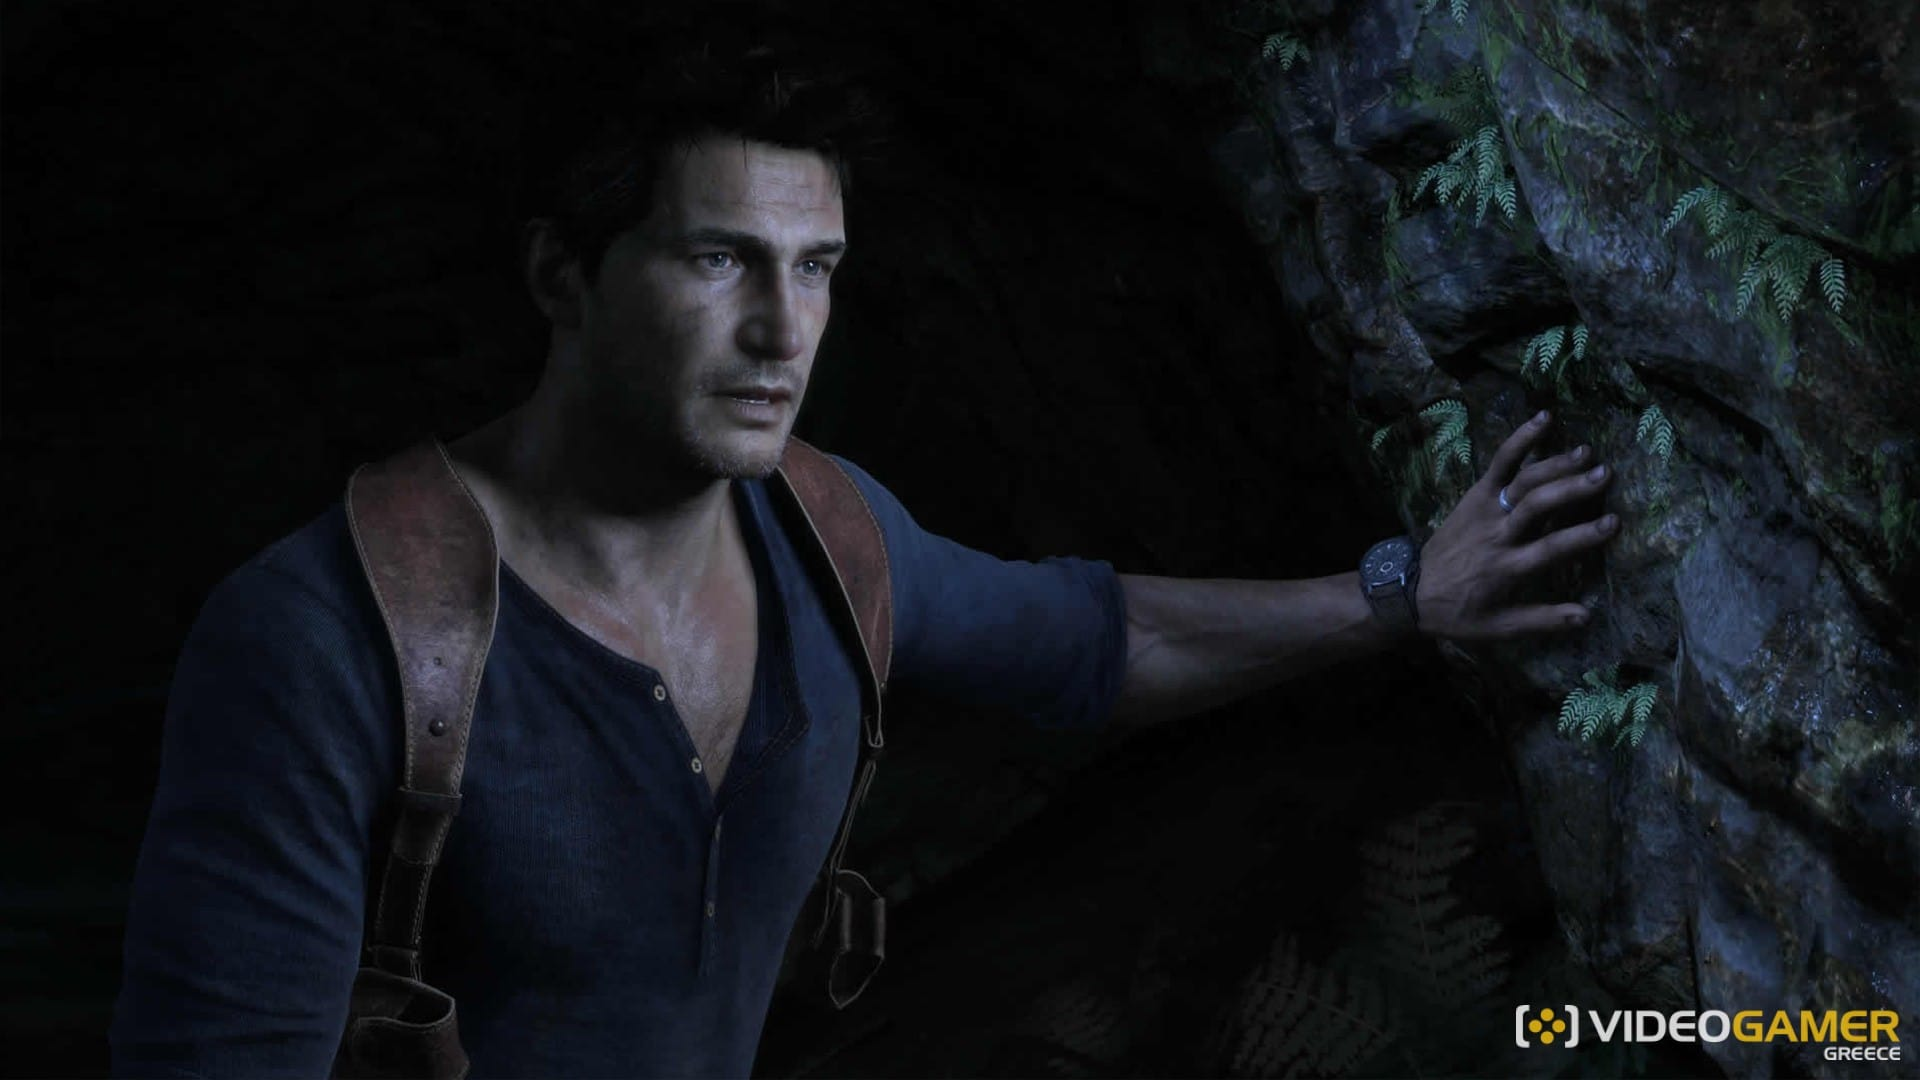 nathan-drake-might-die-uncharted-4-a-thief-s-end-druckmann-implies-498760-2